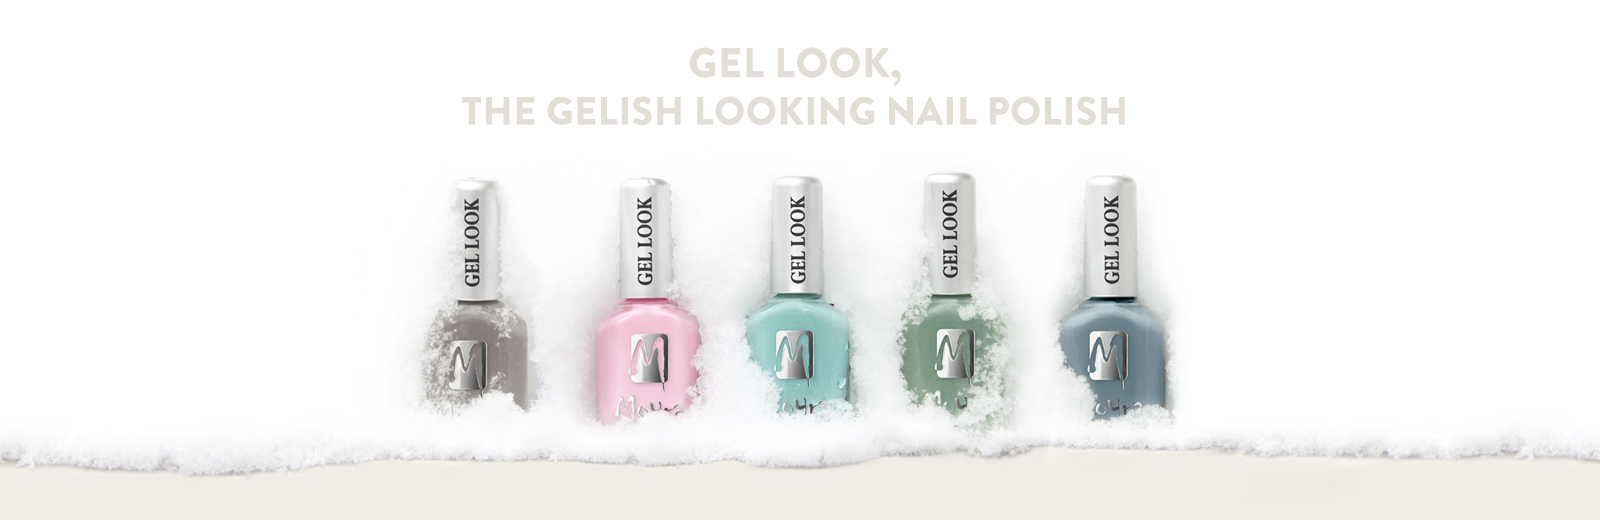 Moyra gel look nail polish